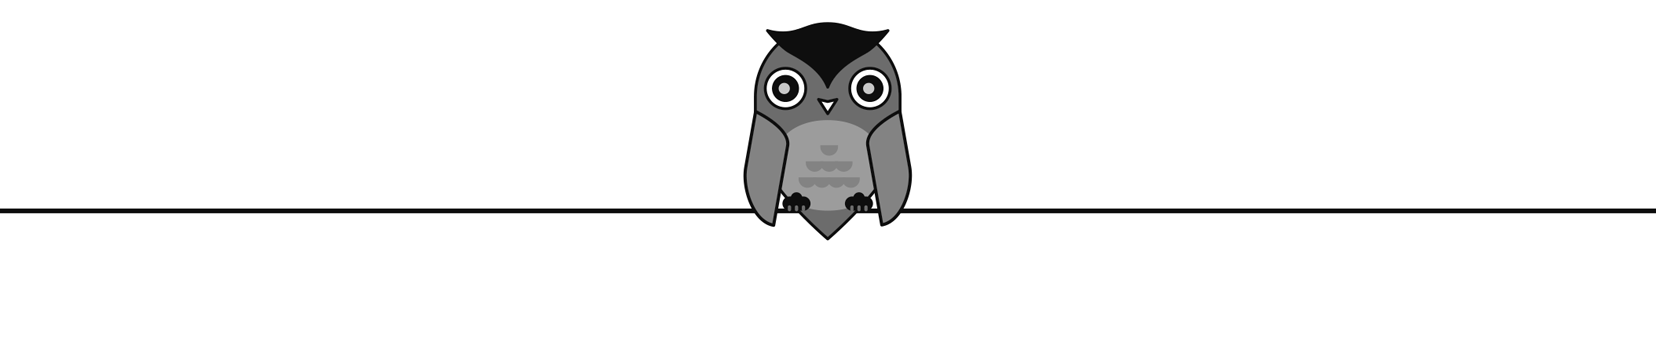 Illustration of an owl on a wire.